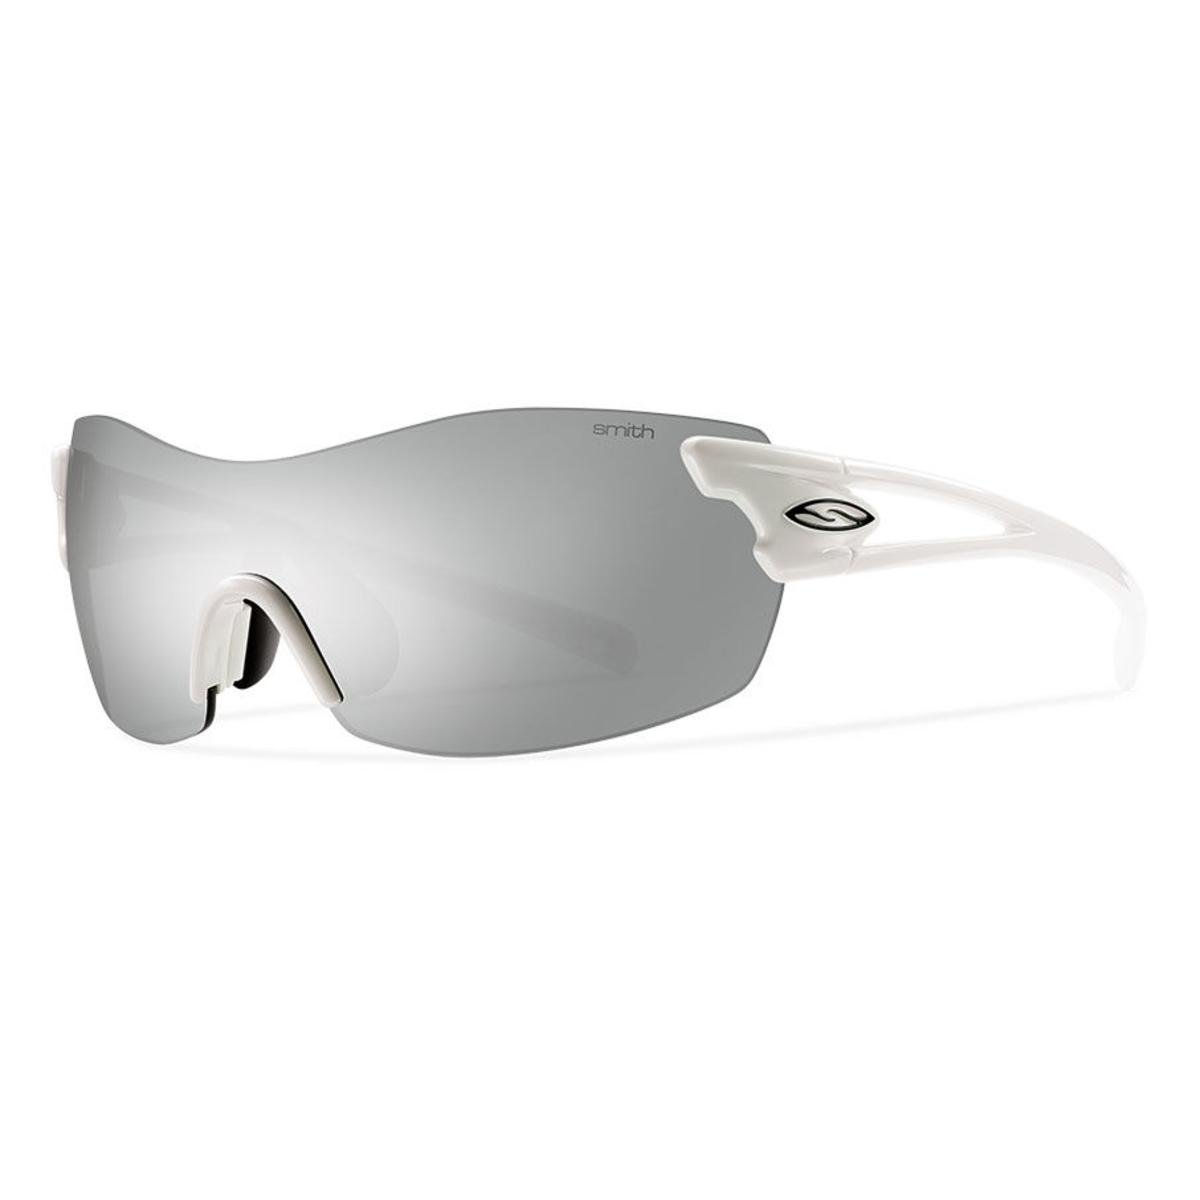 Smith Optics Pivlock Asana Sunglass with Platinum, Ignitor, Clear Carbonic TLT Lenses, White by Smith Optics